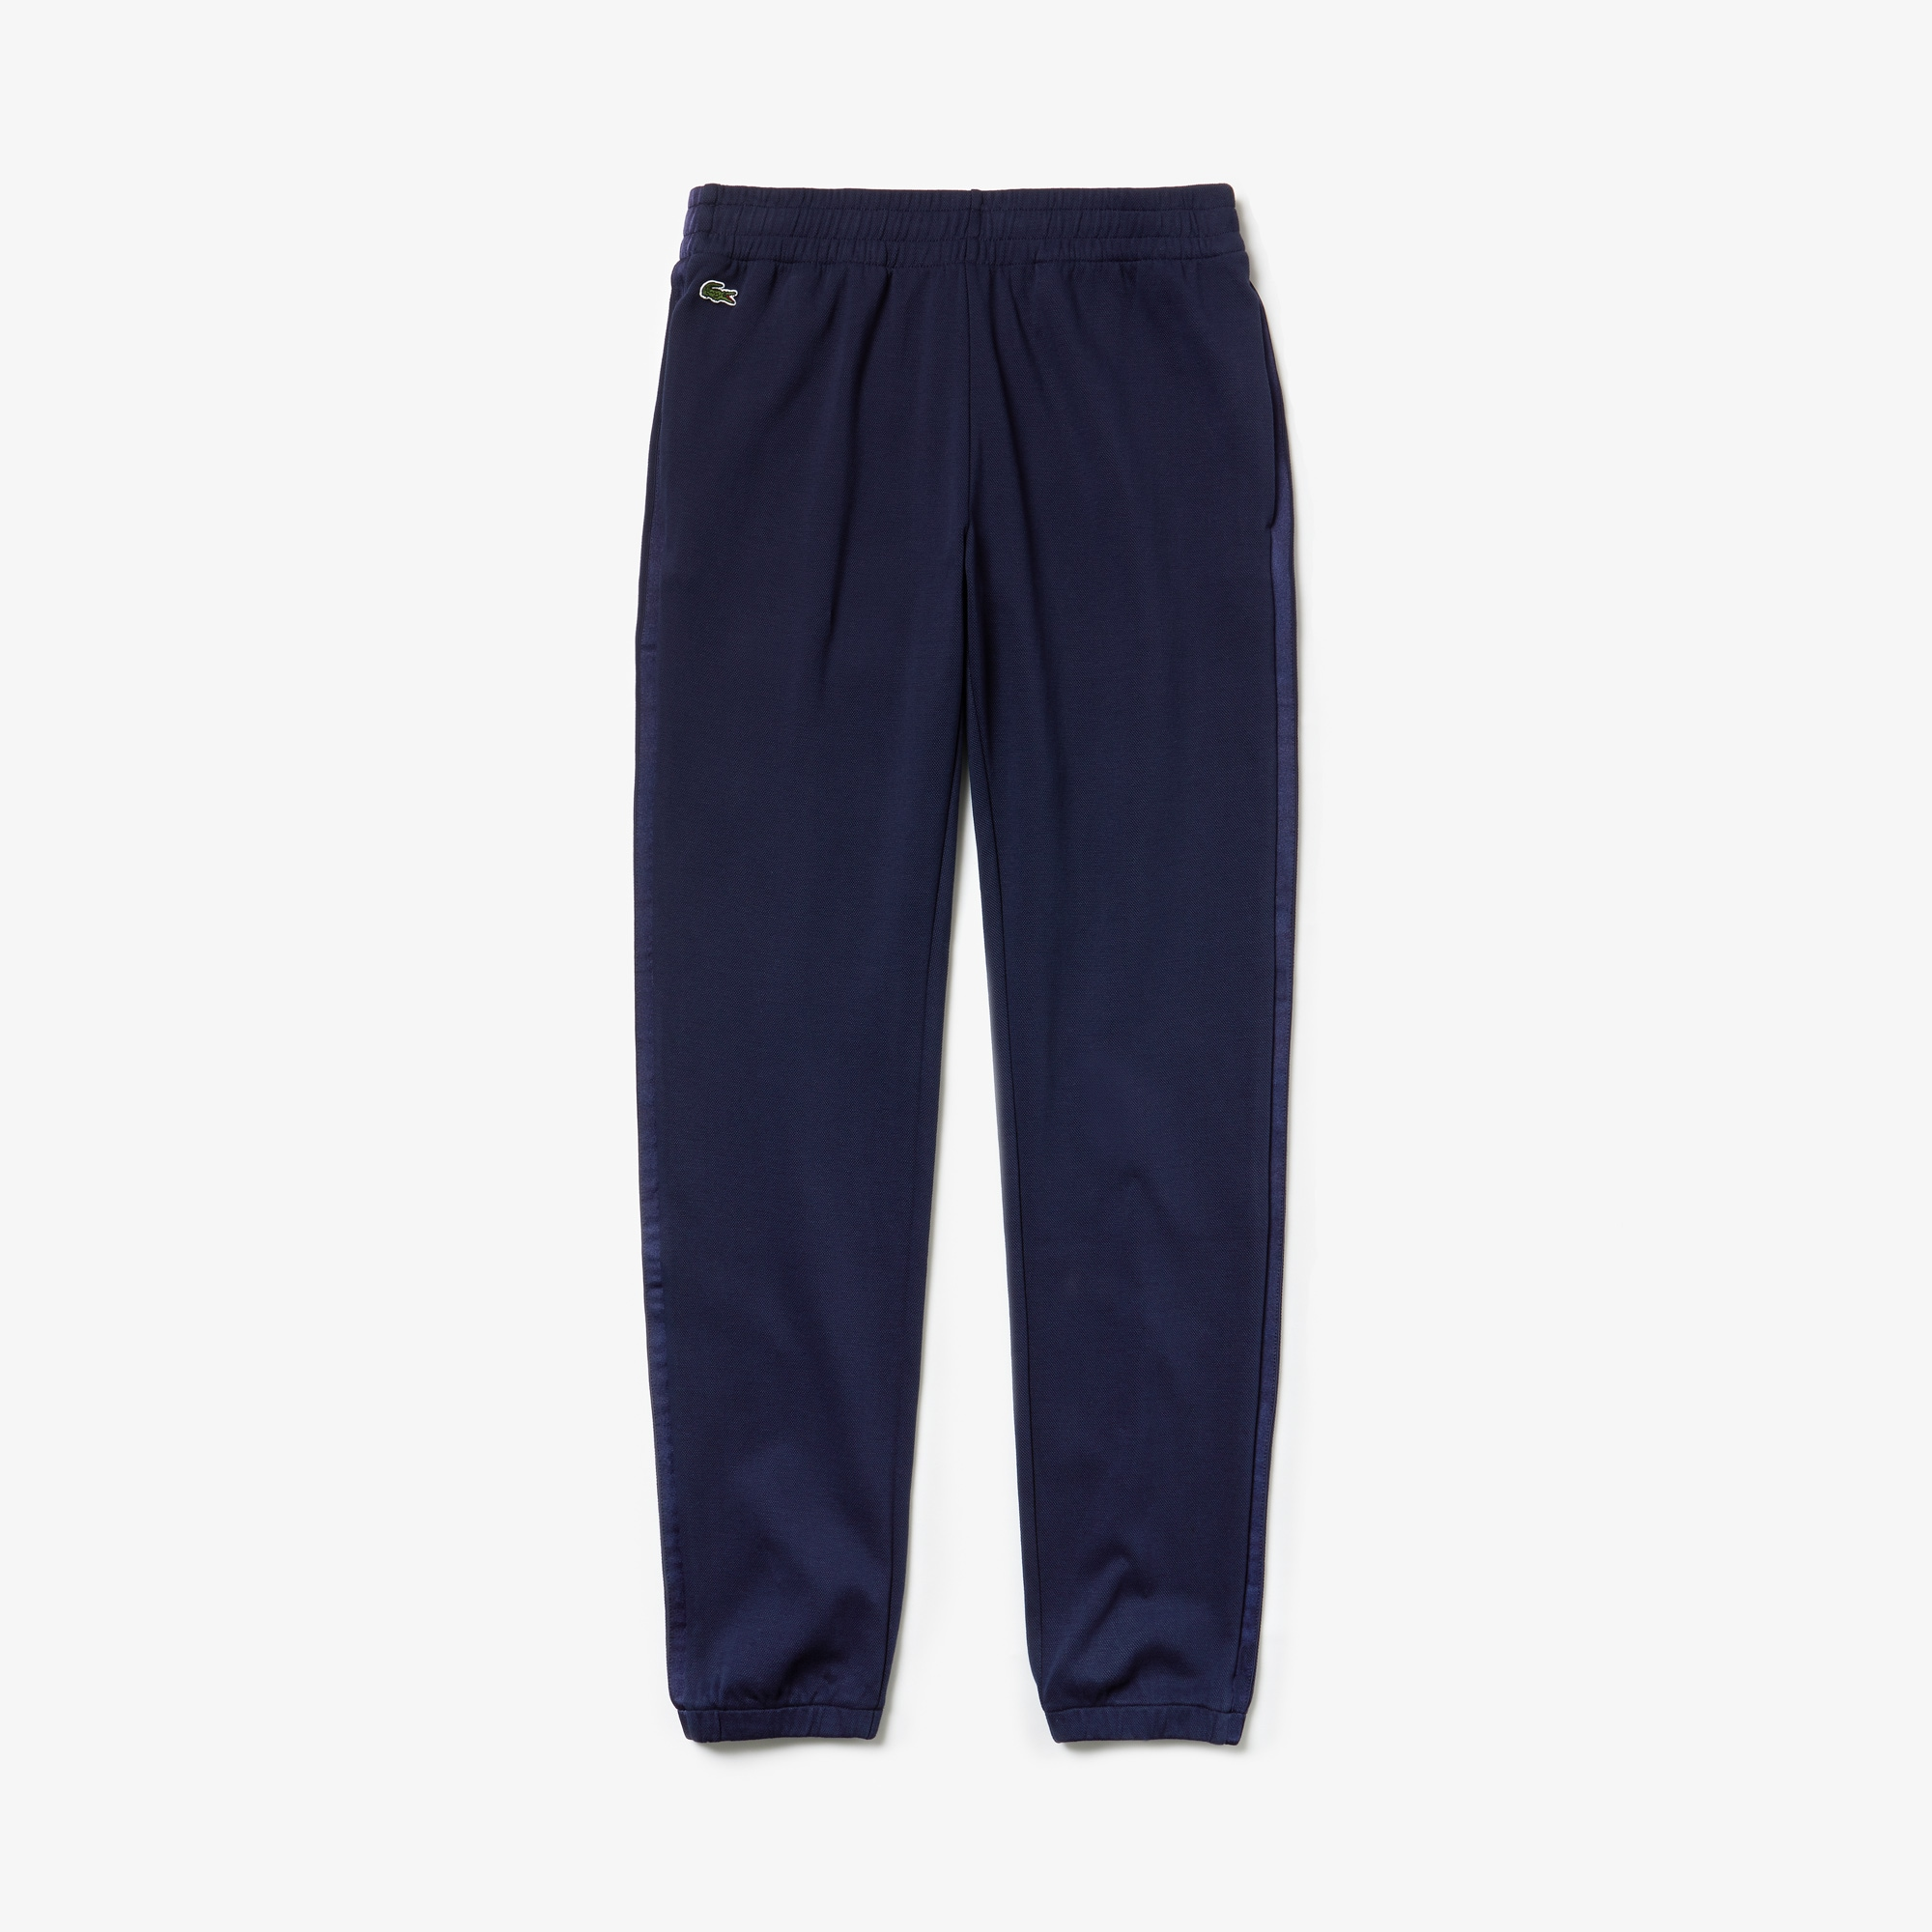 Women's SPORT Piqué Tennis Sweatpants